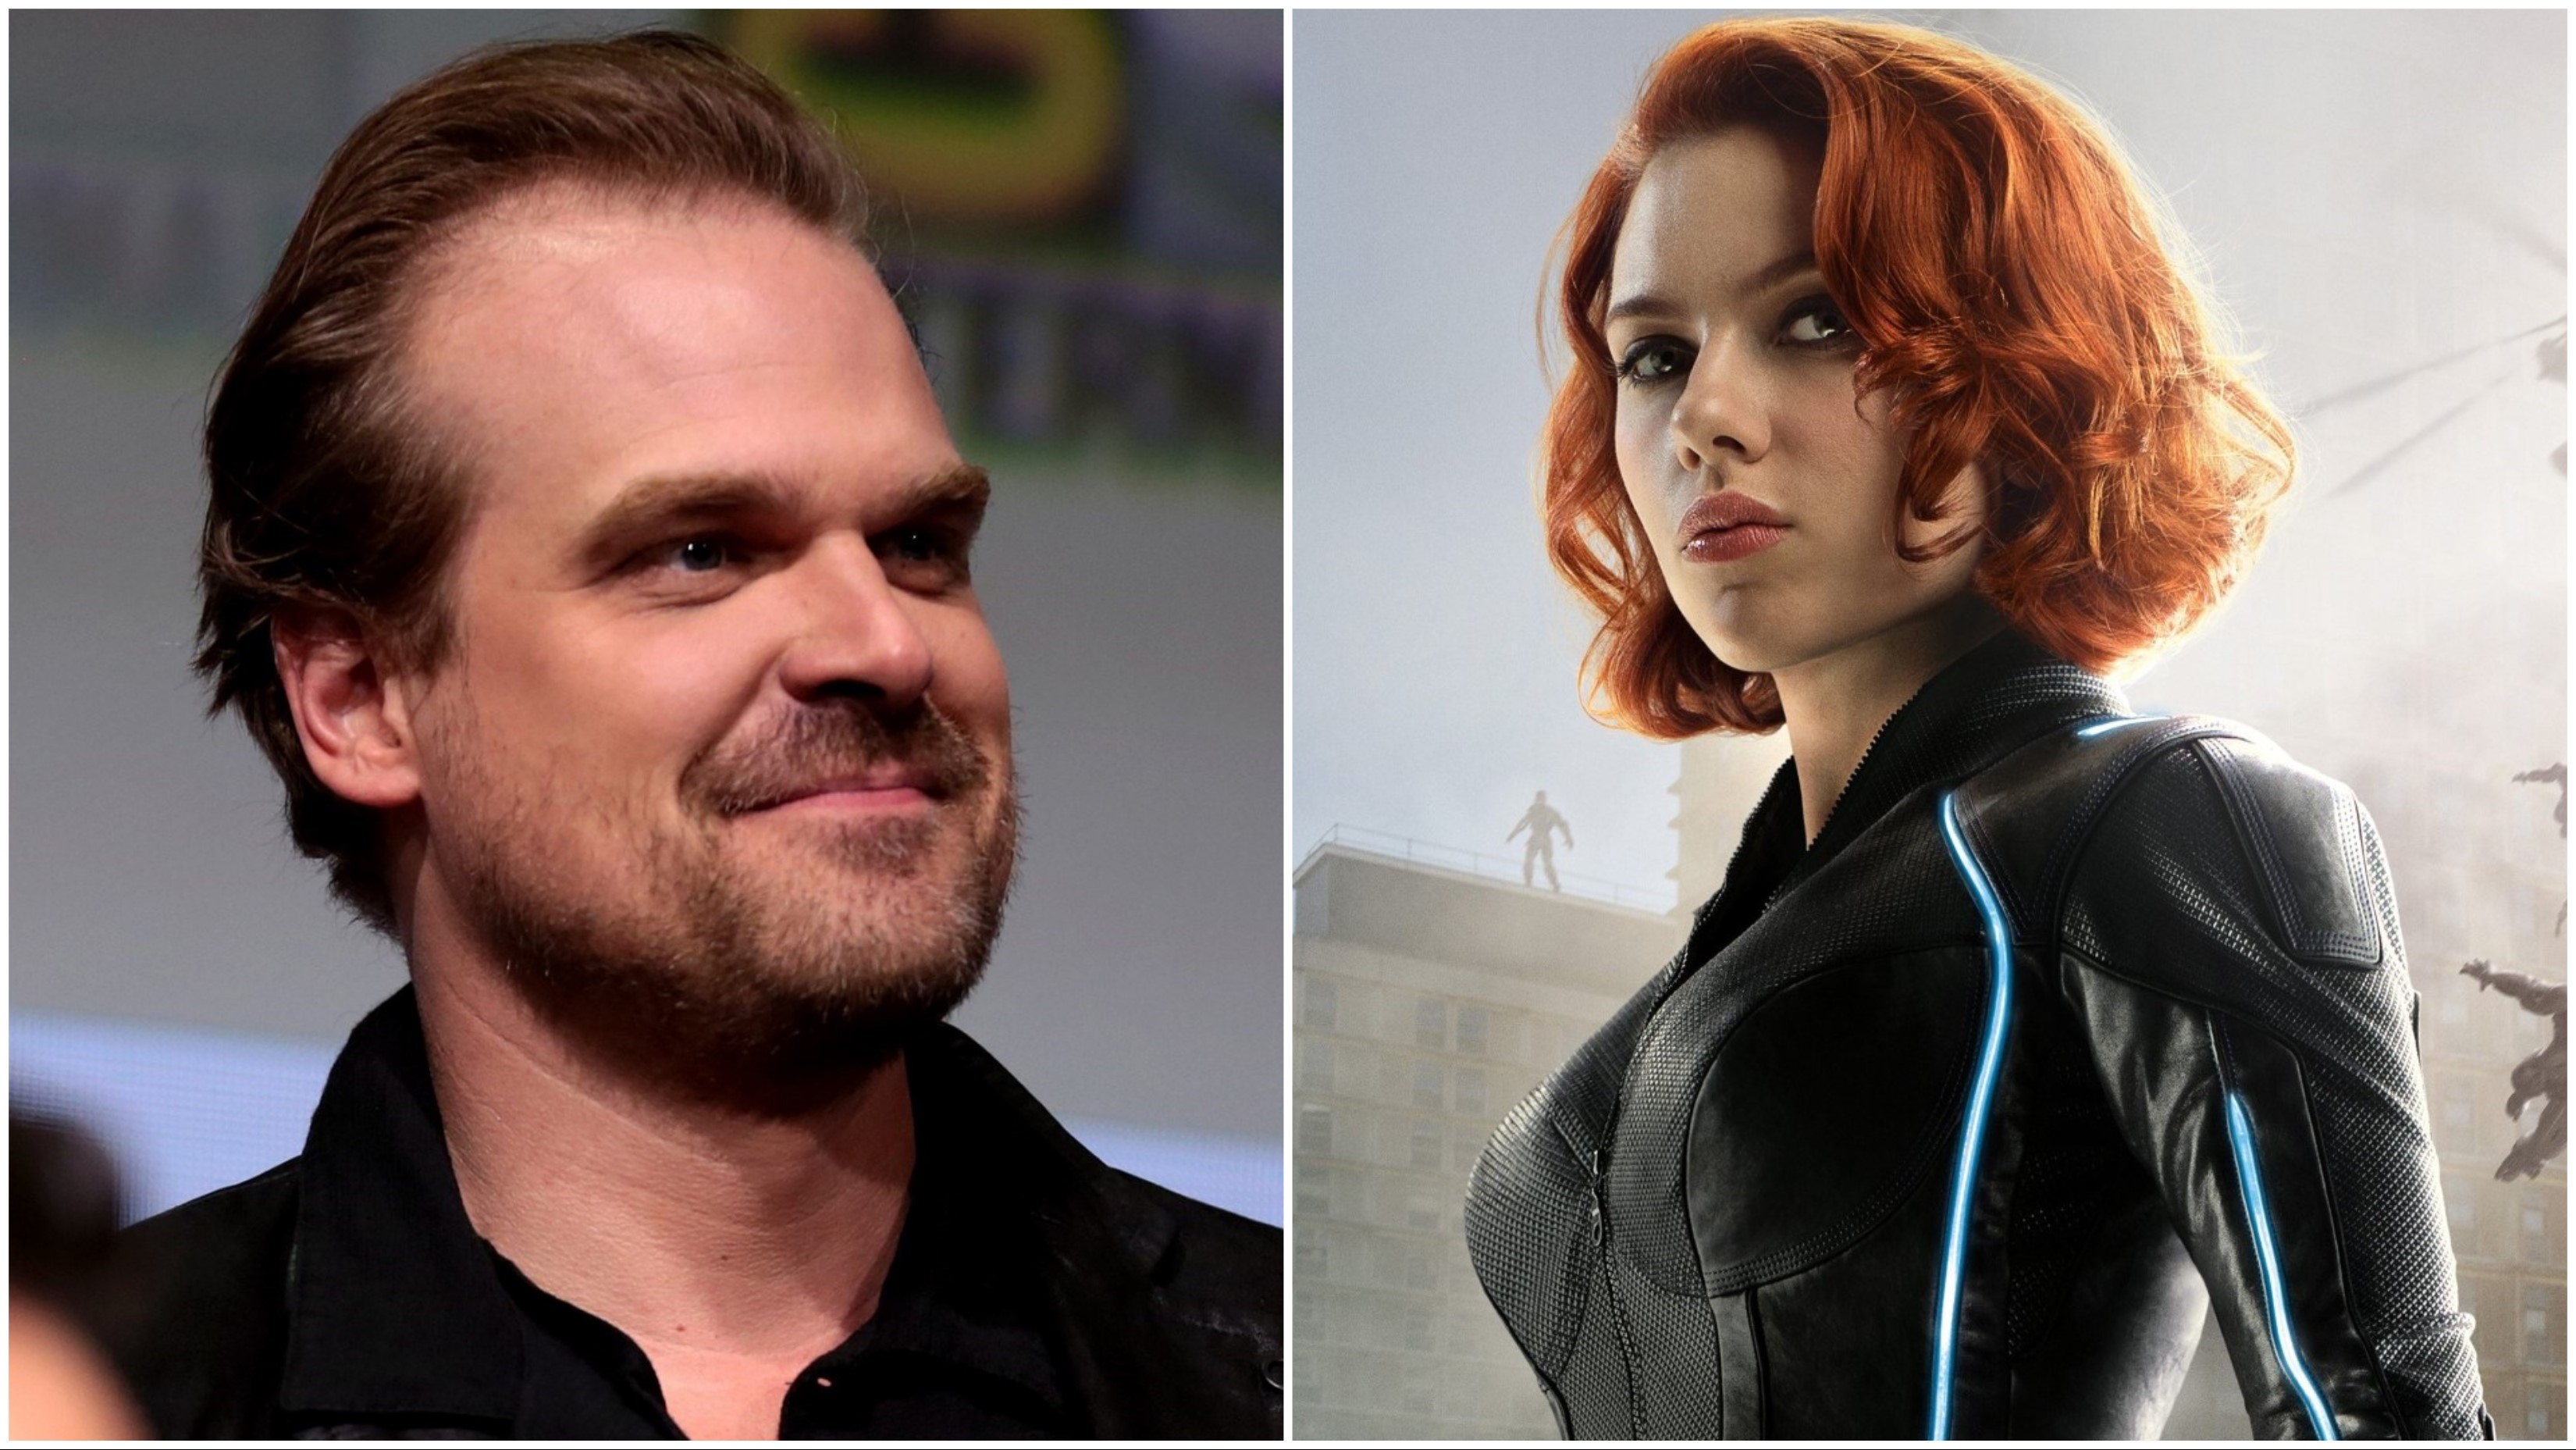 'Hellboy' Star David Harbour Joins 'Black Widow'